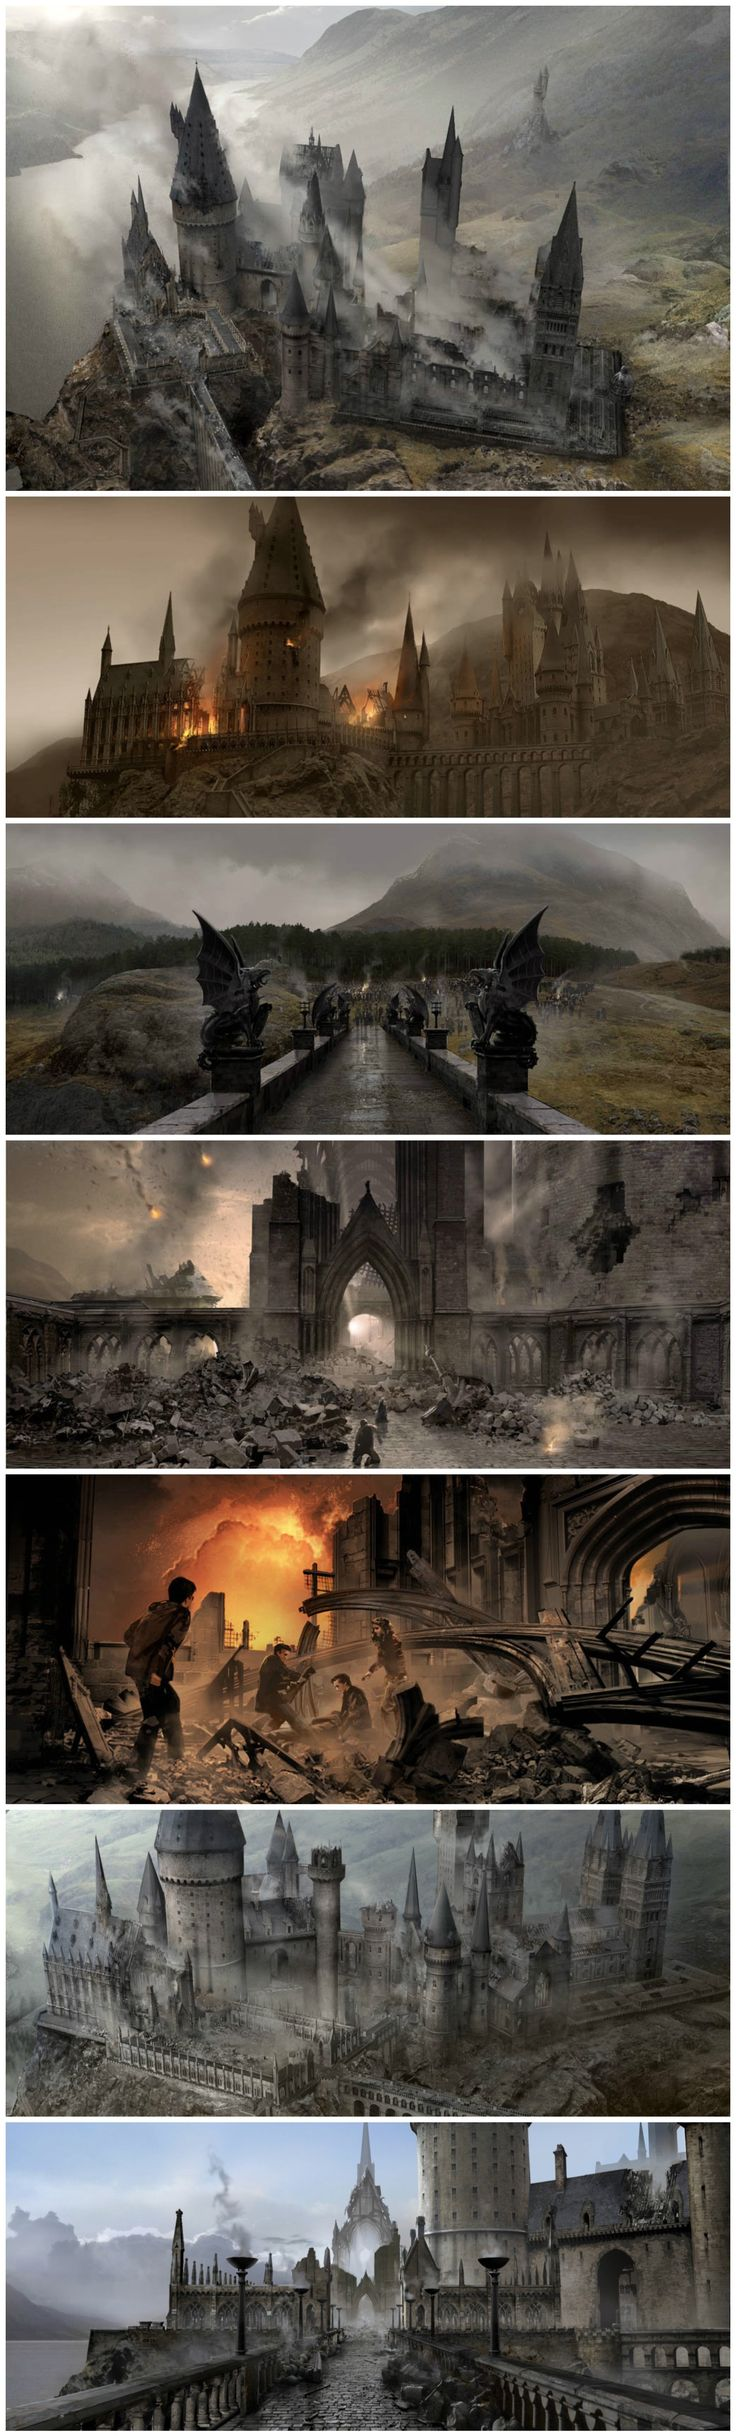 Battle of Hogwarts  concept art by Andrew Williamson.